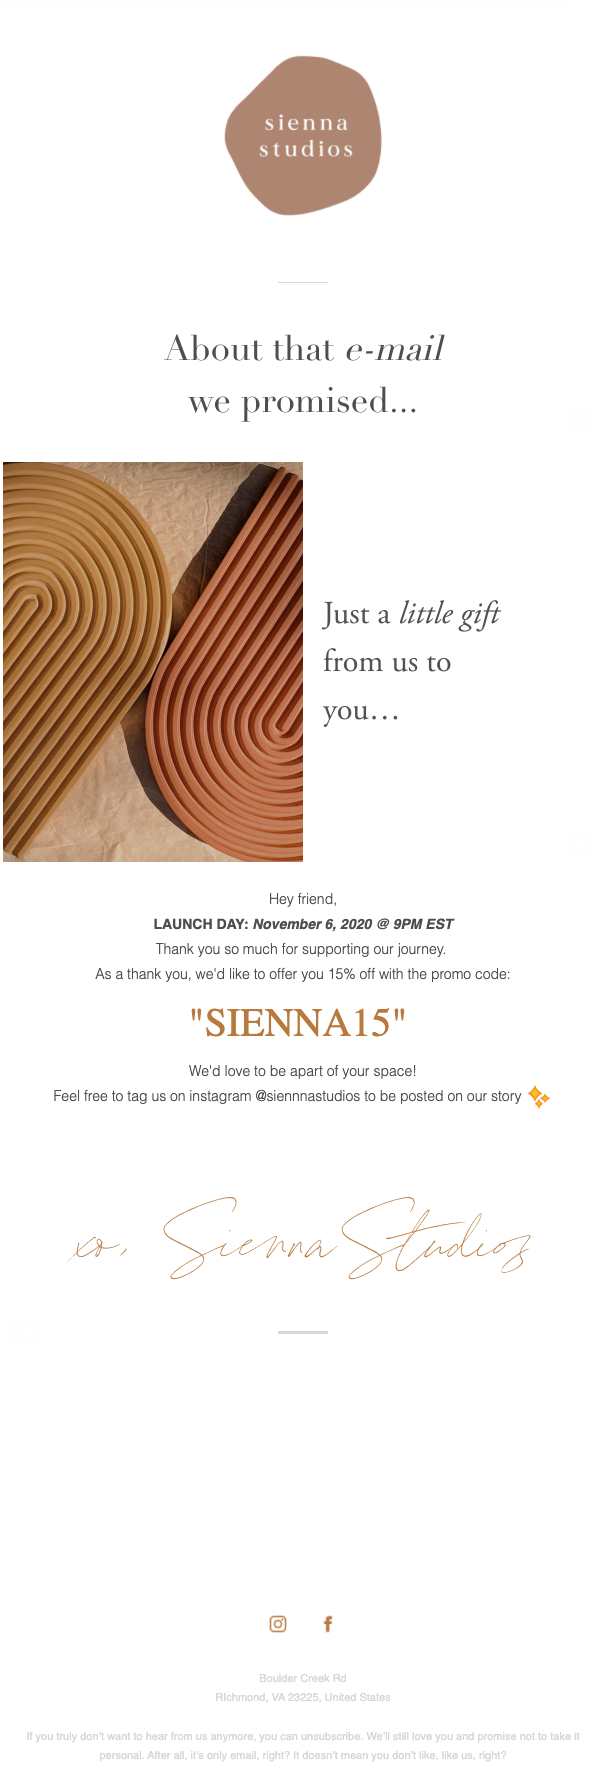 Sienna Studios welcome email.